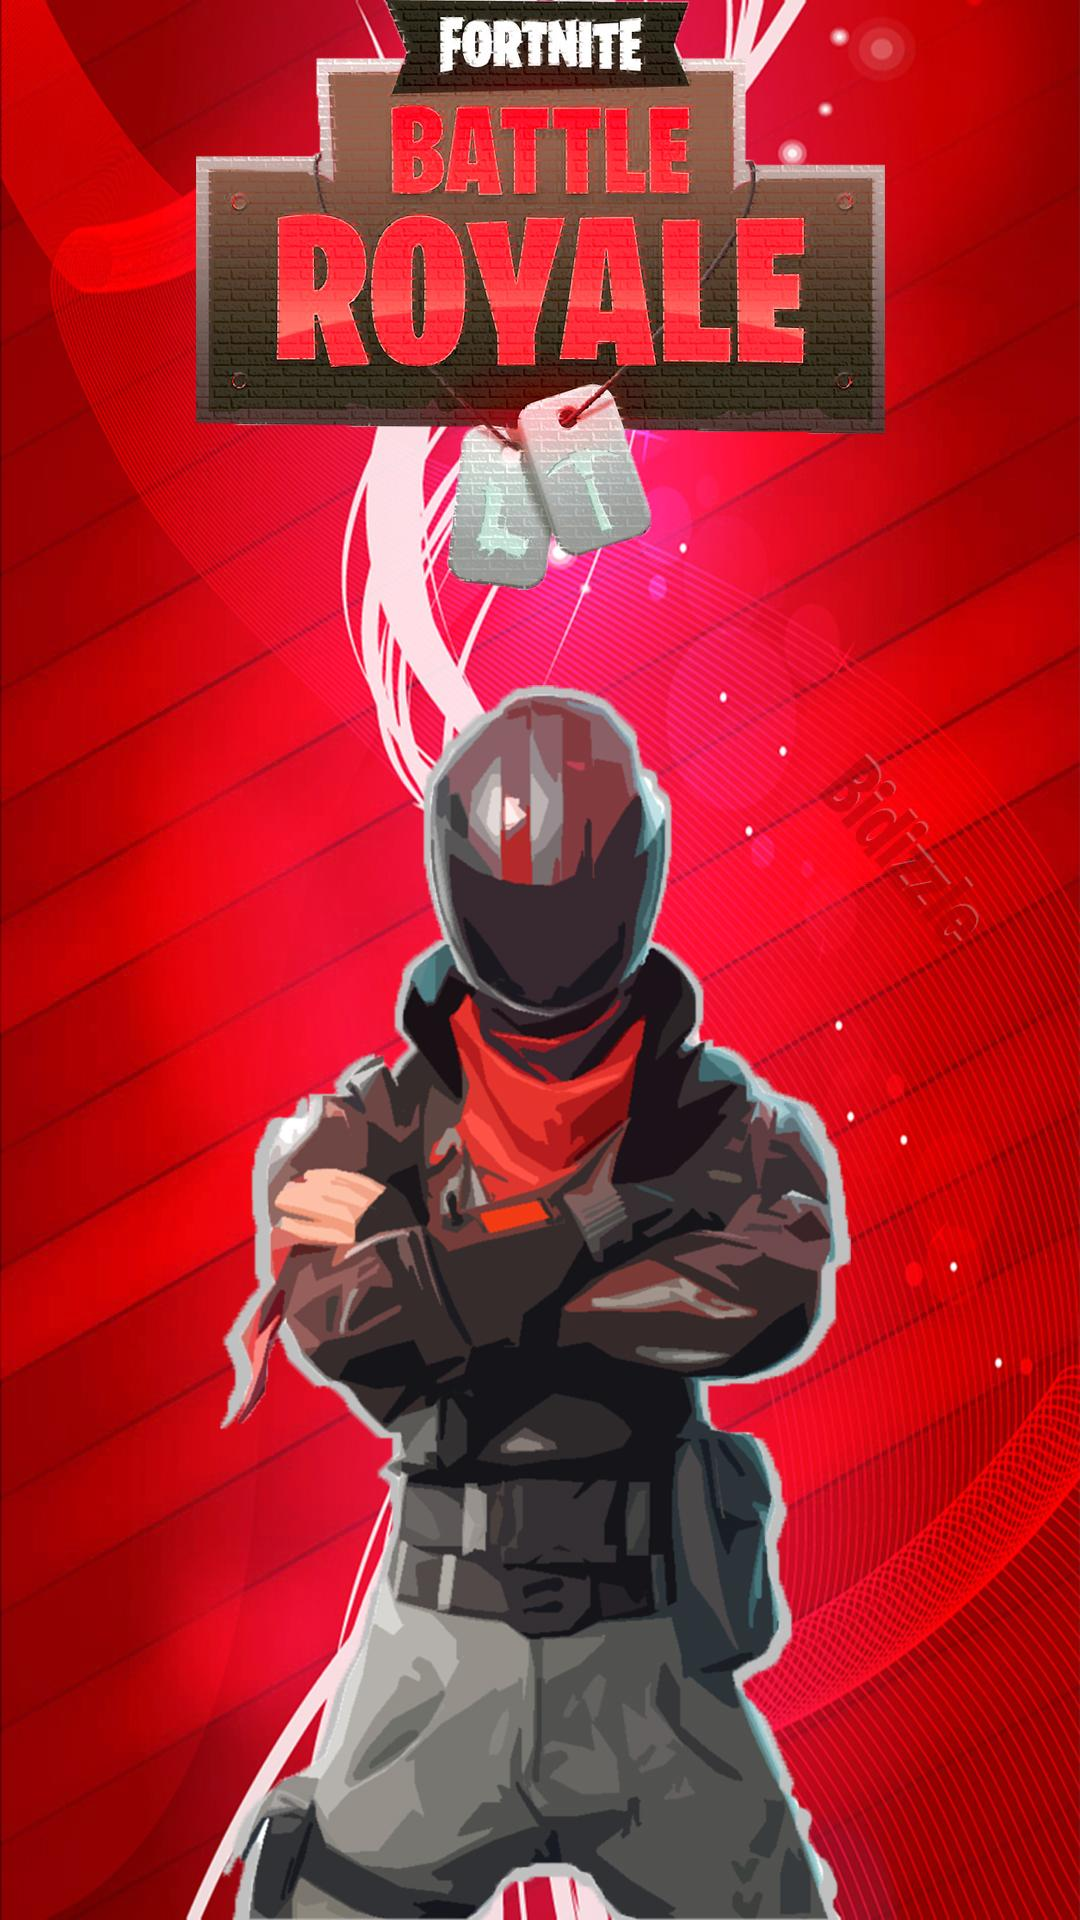 Forntite Battle Royale Skin Wallpapers Top Free Forntite Battle Royale Skin Backgrounds Wallpaperaccess